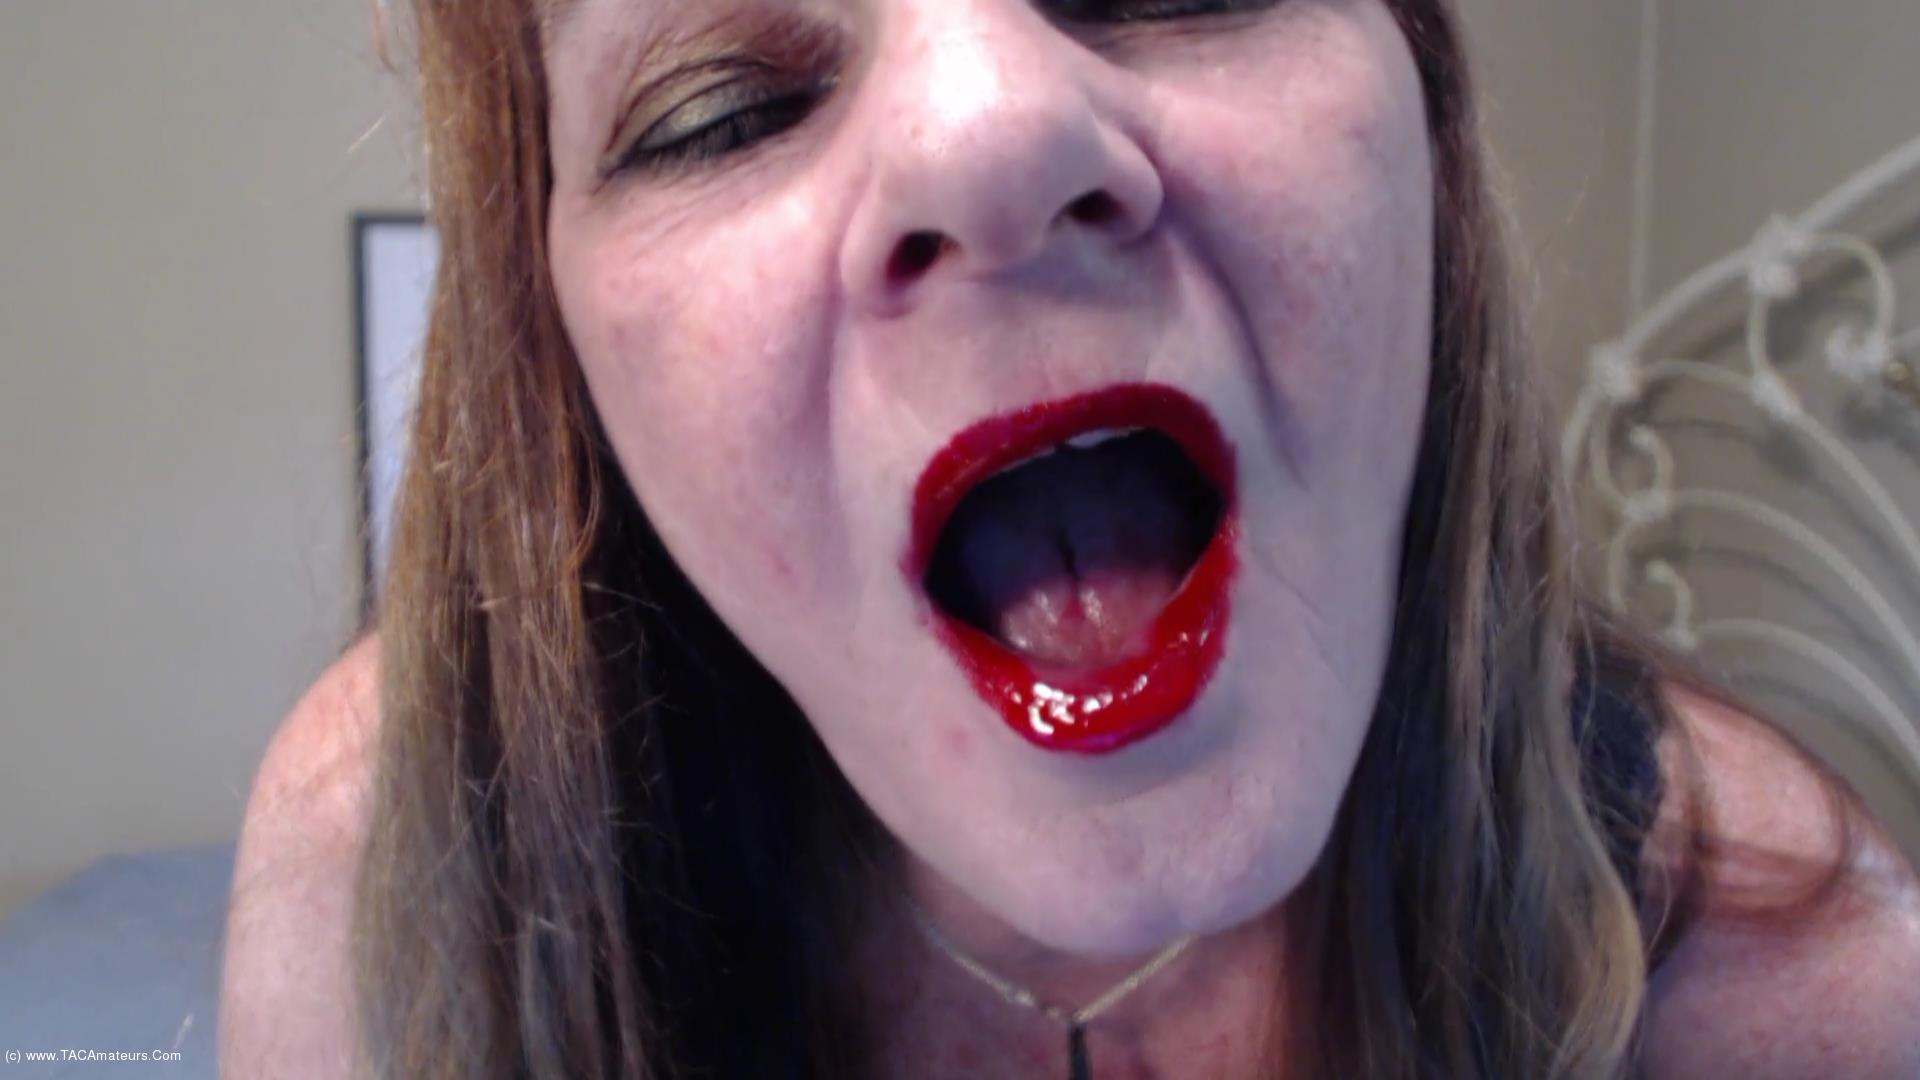 CougarBabeJolee - Red Shiny Lips Teasing You scene 2